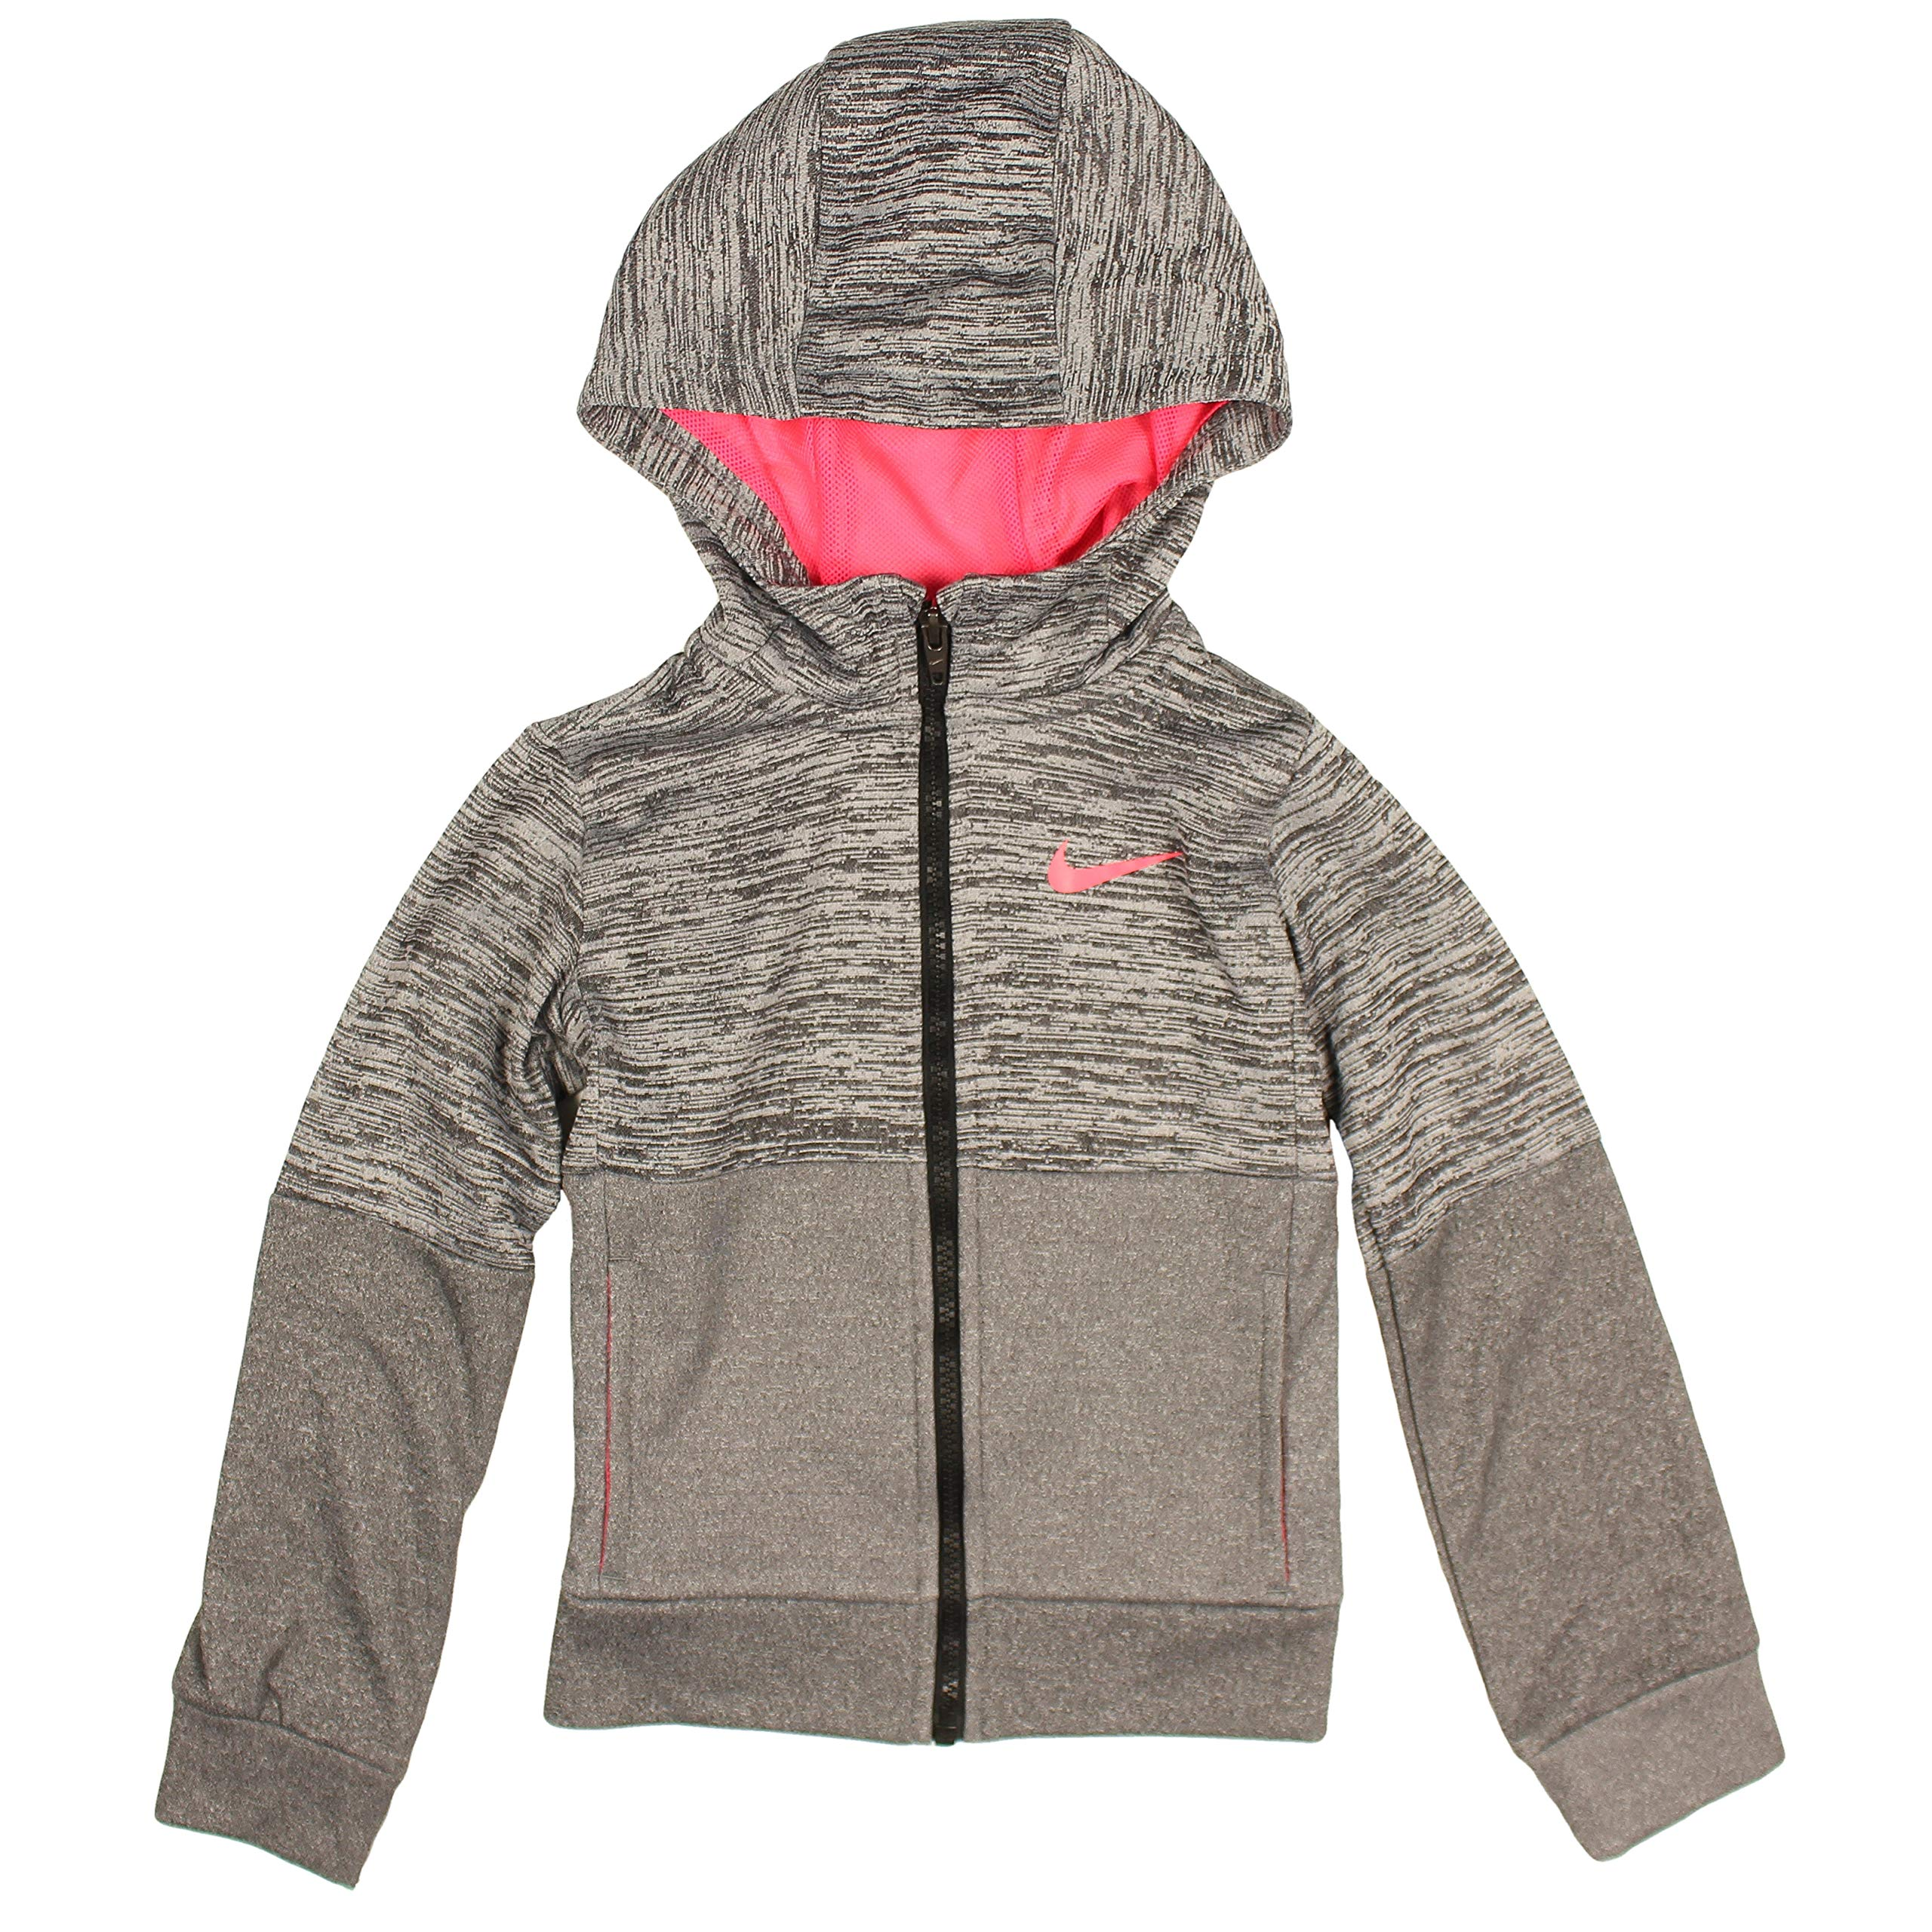 Nike Little Girls' Full Zip Dri-FIt Therma Hoodie (Gray/Neon Pink, 4) by Nike